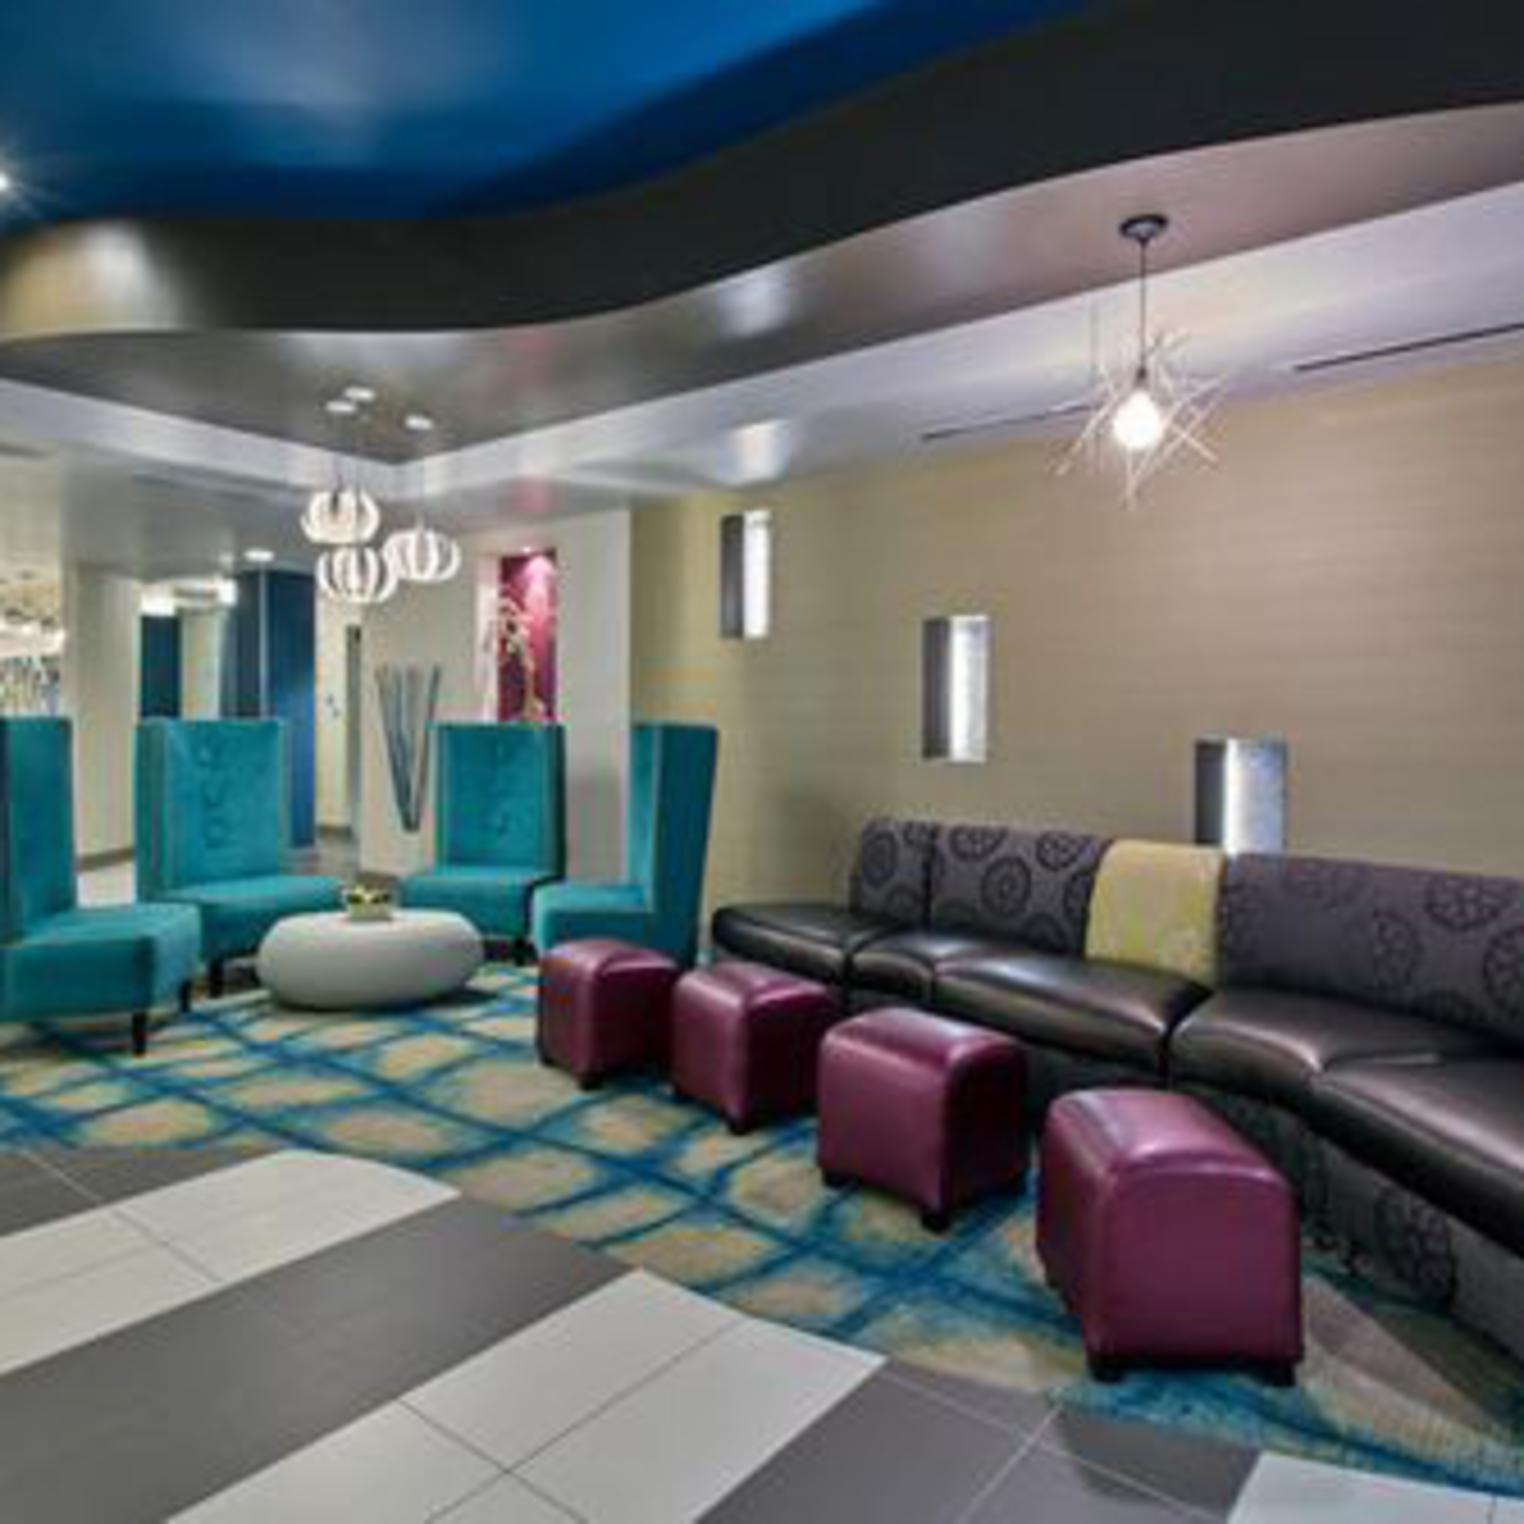 Holiday Inn Express and Suites Carlisle Lobby